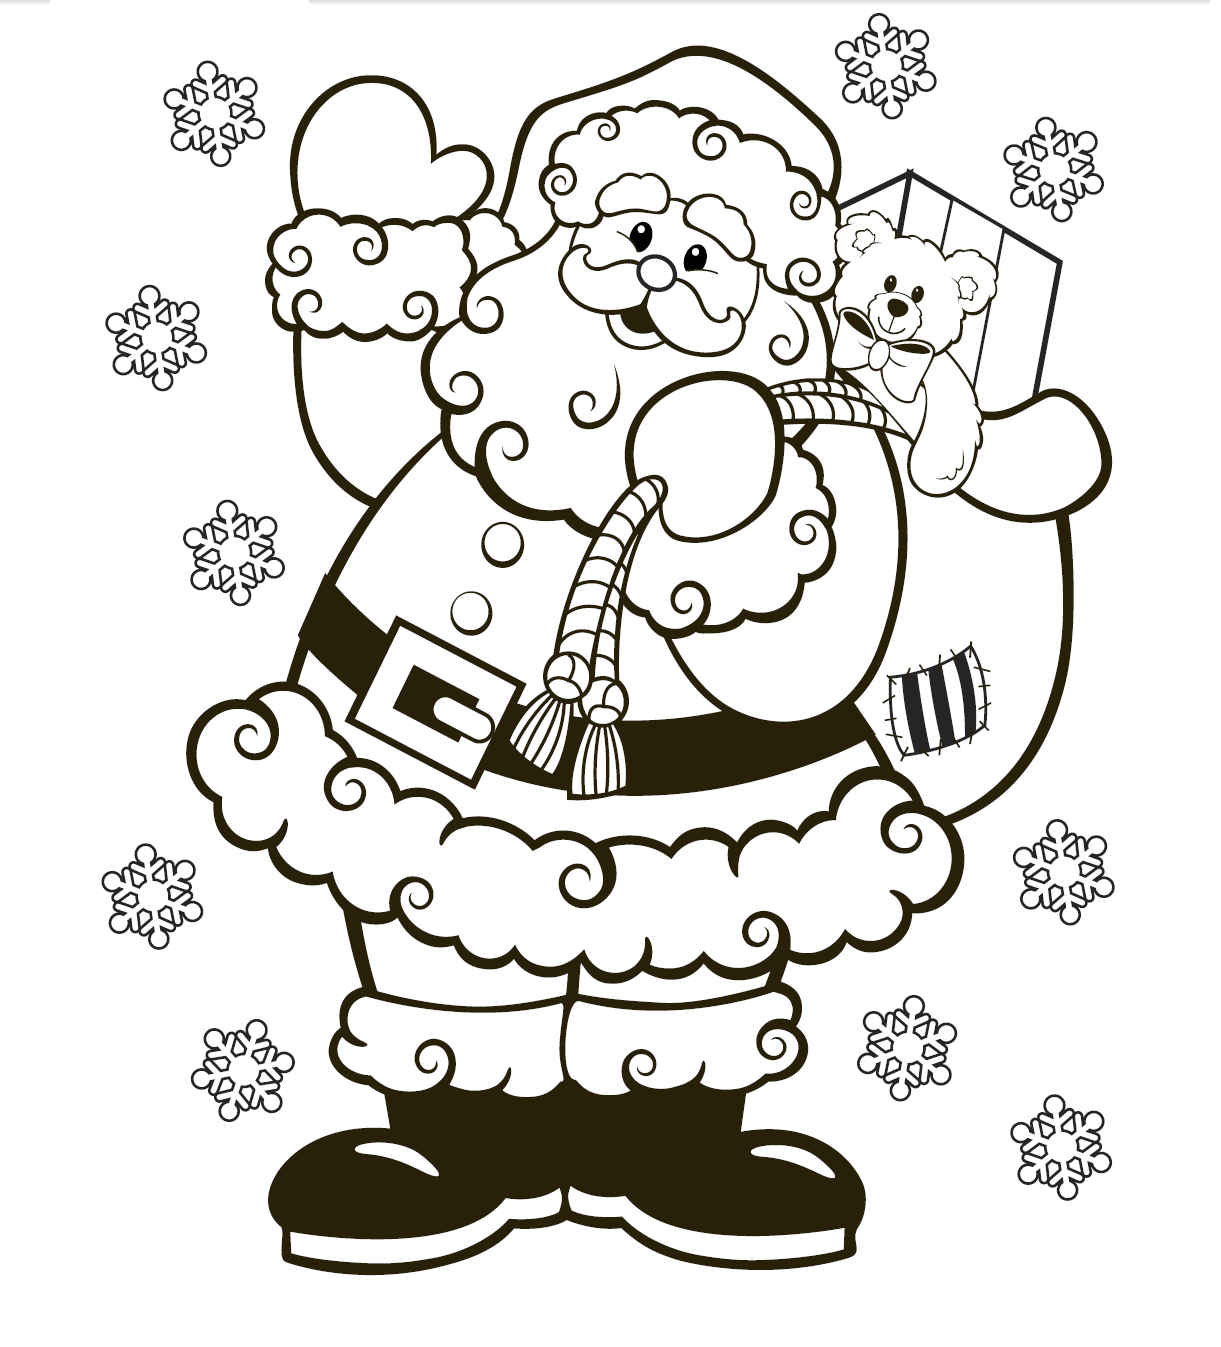 Printable Christmas Colouring Pages - The Organised Housewife | christmas colouring pages